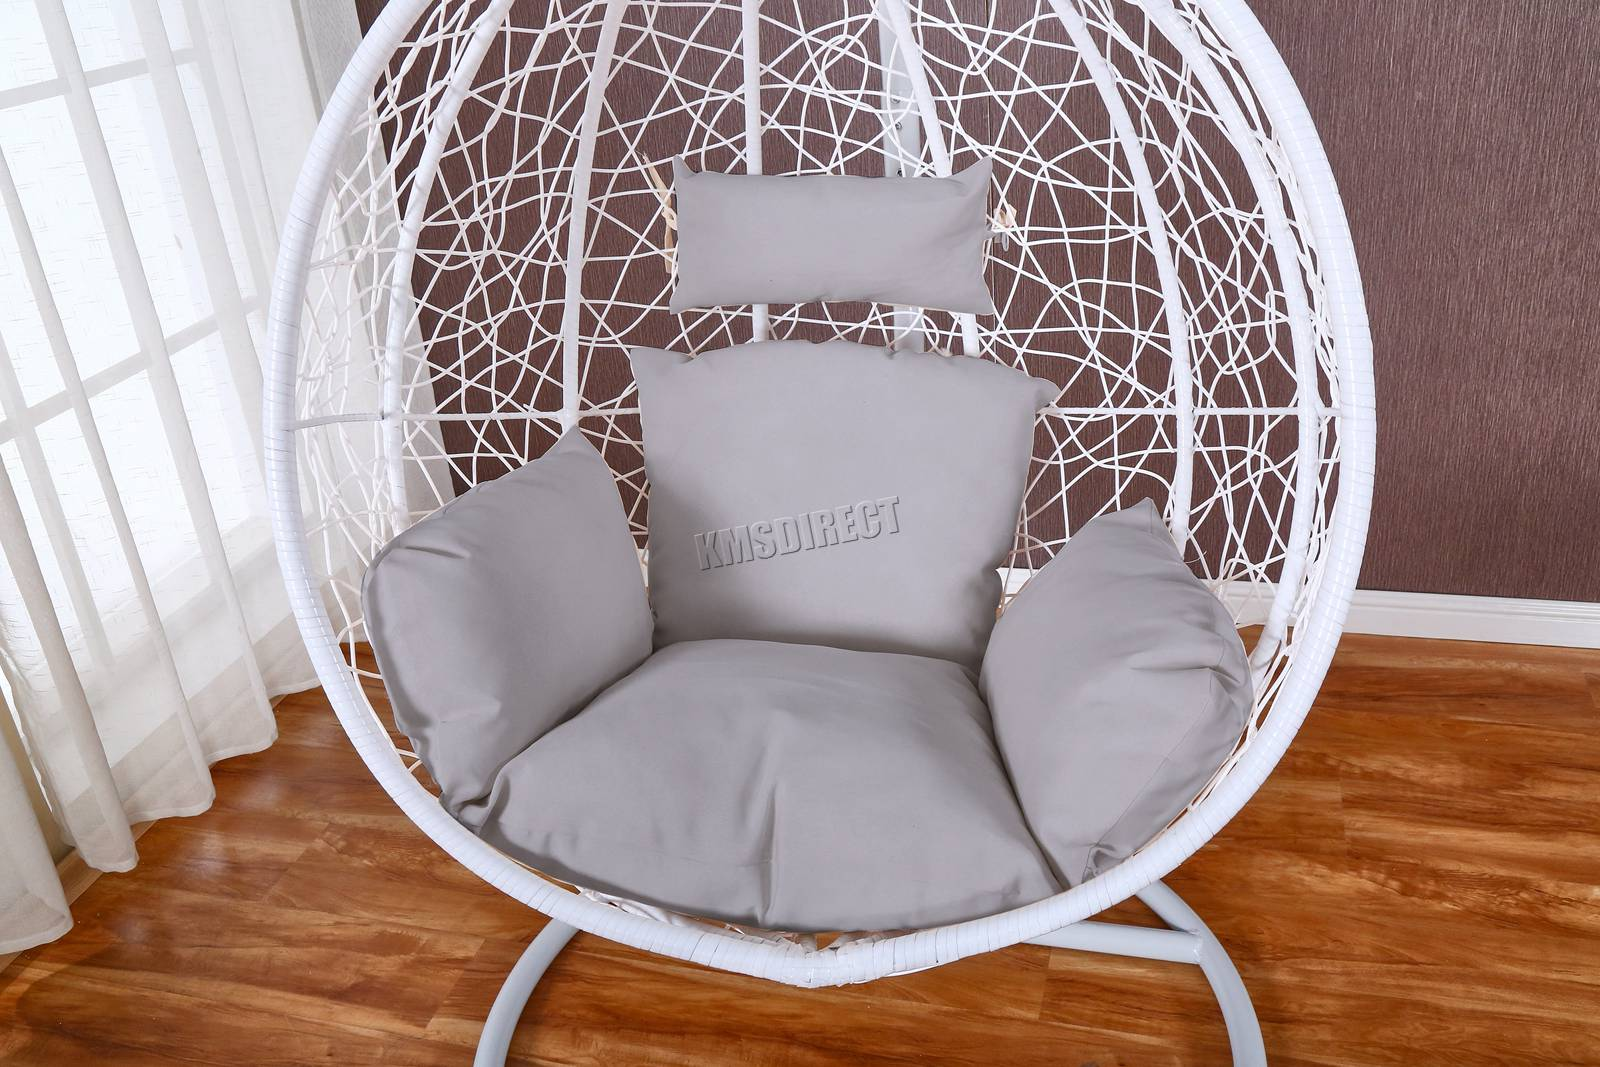 Egg Wicker Chair Details About Westwood Egg Swing Hanging Chair Hammock Wave With Cushion Rattan Wicker Eswr01